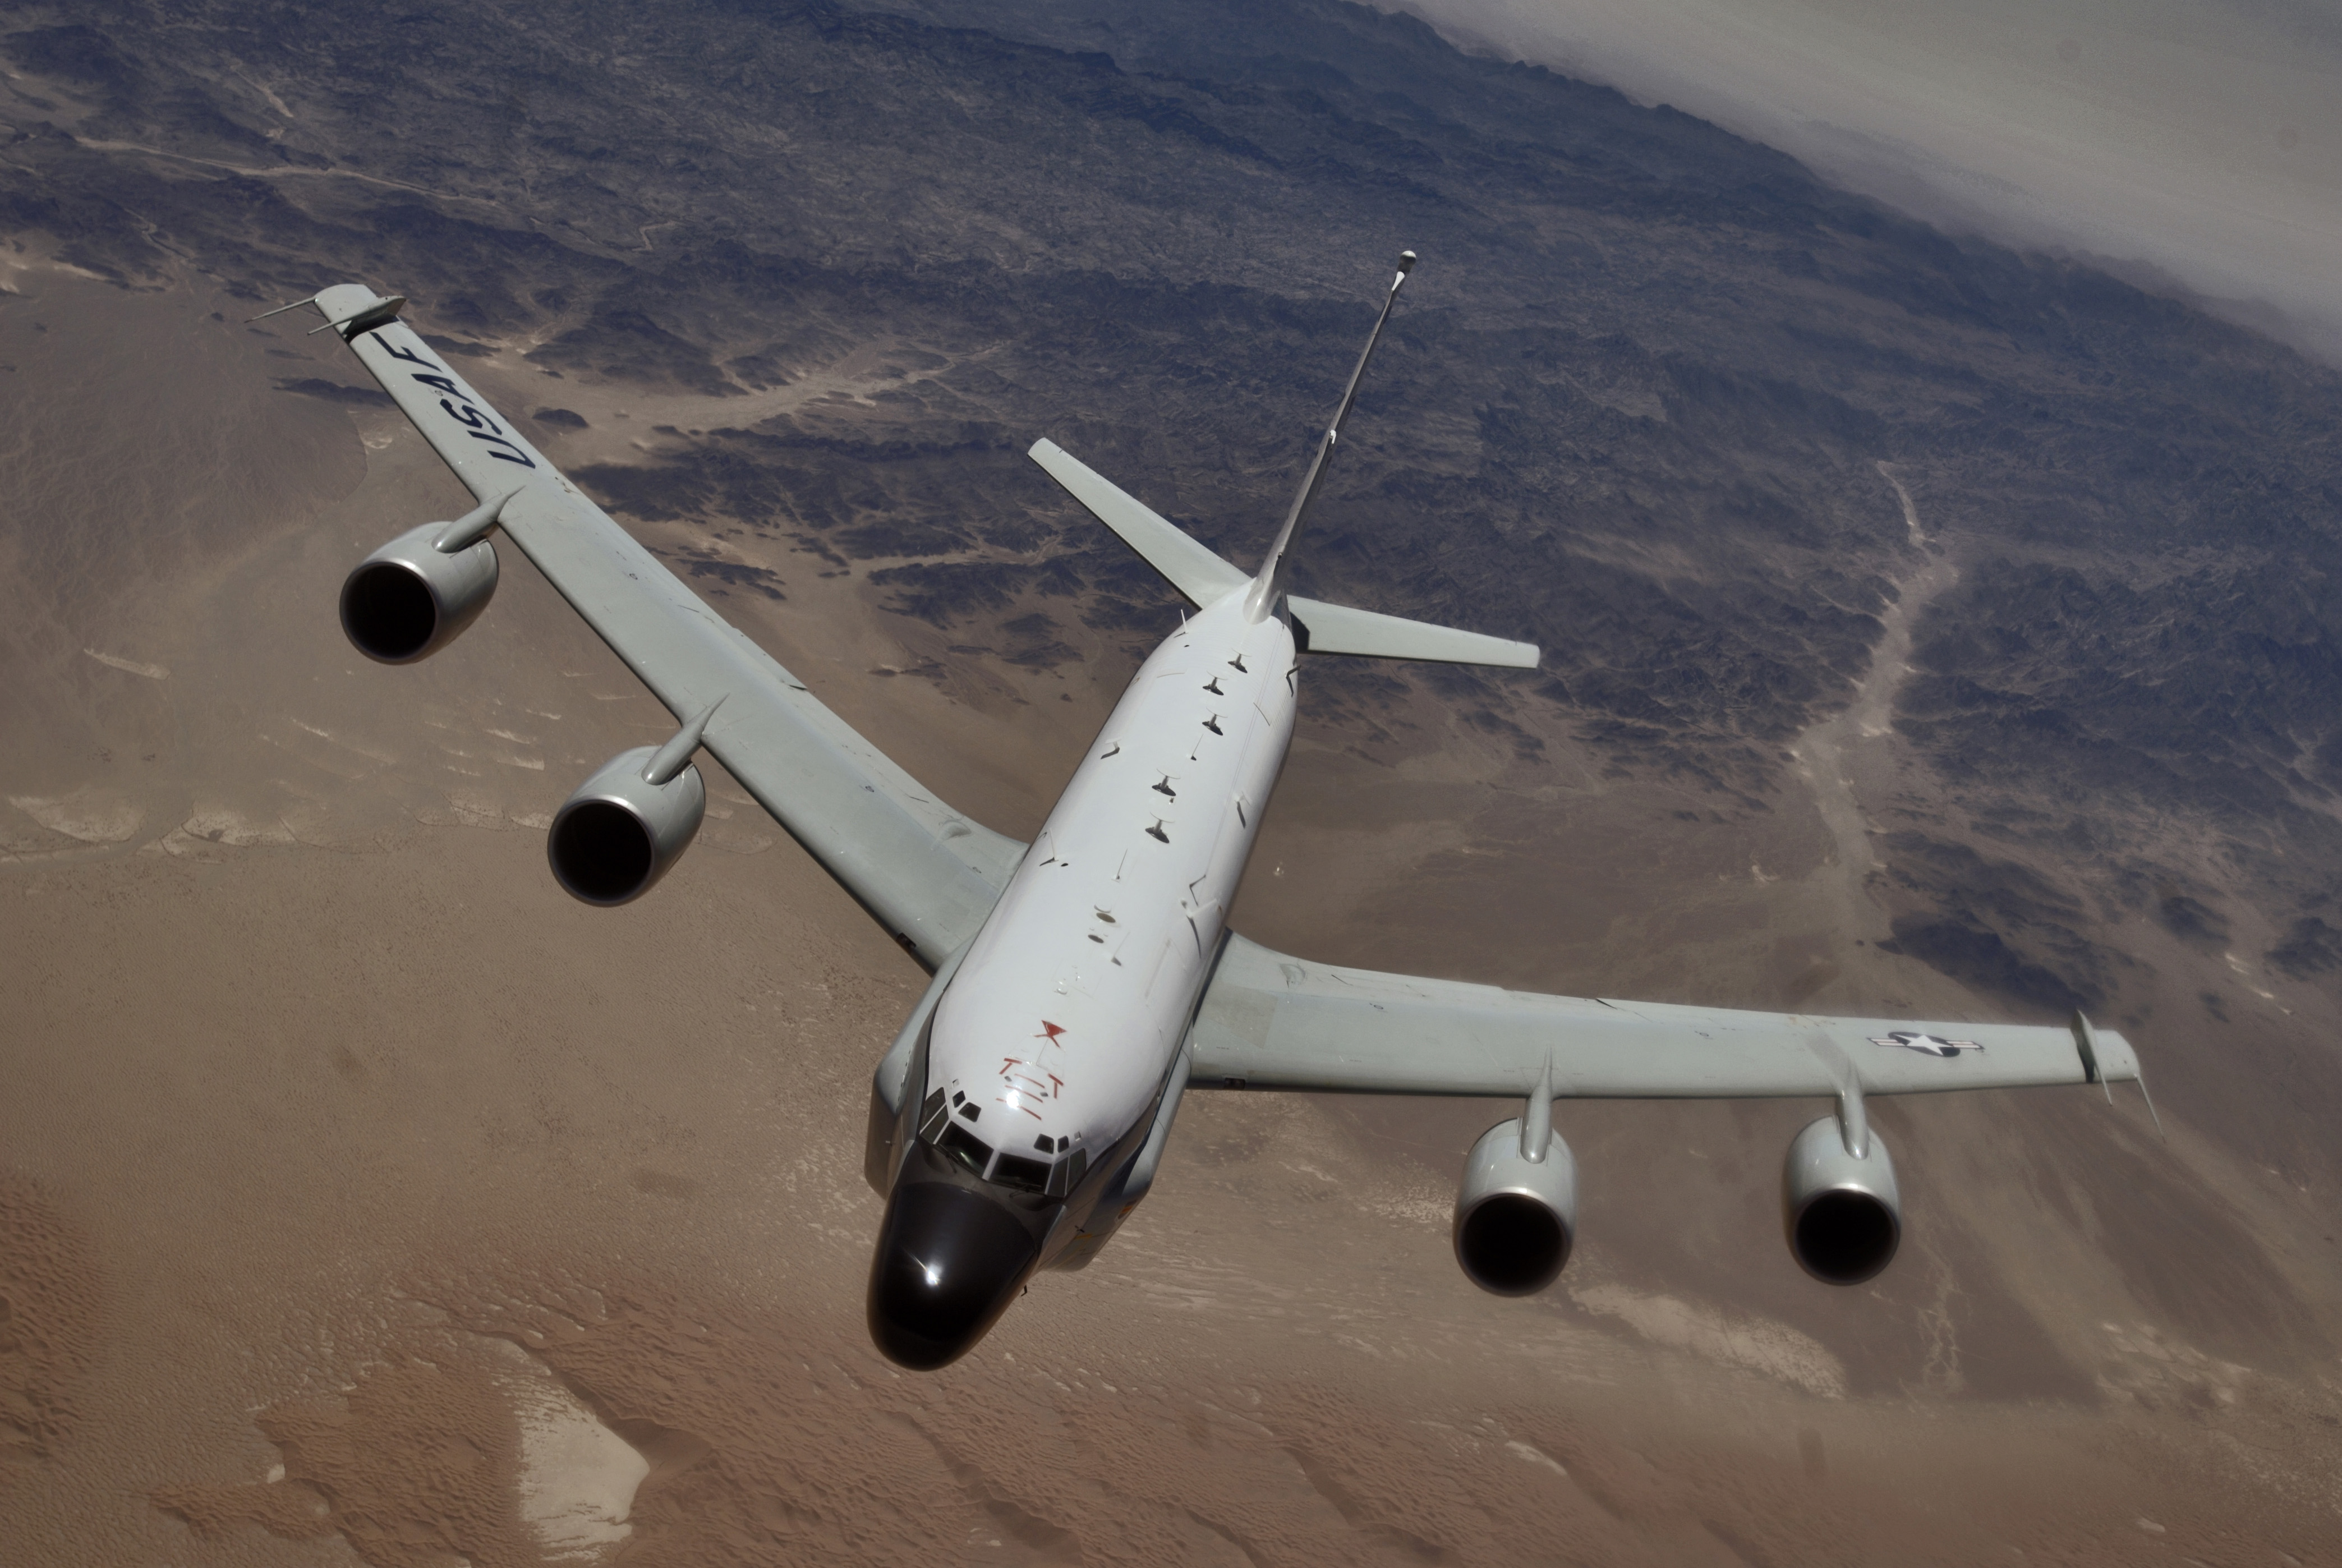 RC-135 Rivet Joint reconnaissance aircraft moves into position behind a KC-135T/R Stratotanker for an aerial refueling at a speed greater than 250 knots over Southwest Asia. When connected to the refueling boom, the aircraft will receive more than 40,000 pounds of fuel allowing it to remain on station or move on to other stations to perform its mission. The RC-135 flightcrew of Capt. Mike Edmondson, pilot; 1st Lt. Erik Todoroff, copilot; and 1st Lt. Chris Young, navigator are deployed to the 763rd Expeditionary Reconnaissance Squadron, in Southwest Asia, from 343rd Reconnaissance Squadron, Offutt Air Force Base, Neb. They are natives of East Moline, Il., Jackson, Mich., and Charleston S.C.. (U.S. Air Force photo by Master Sgt. Lance Cheung)